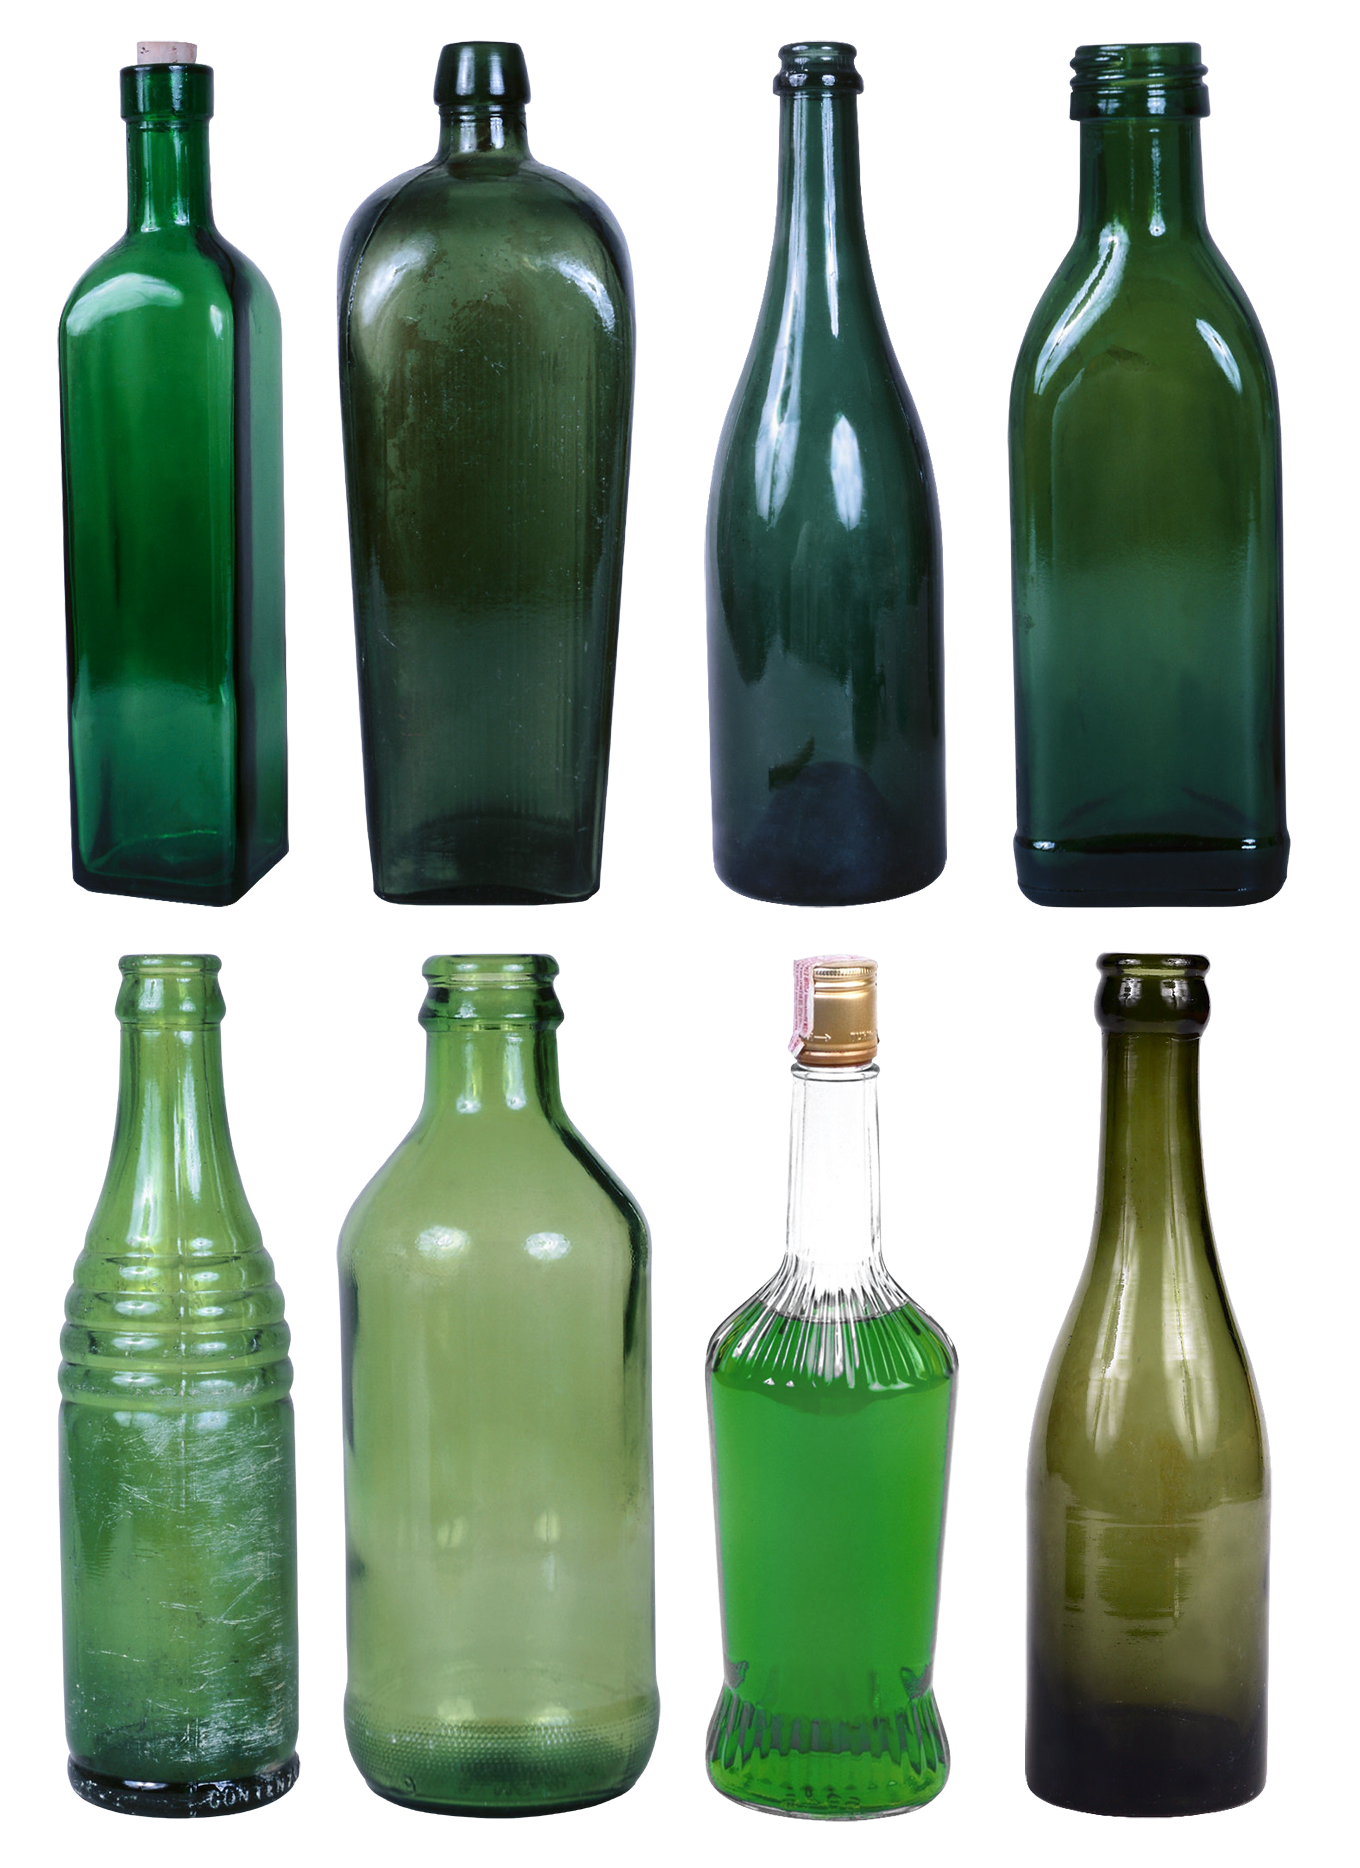 Free download of Bottle PNG Image Without Background